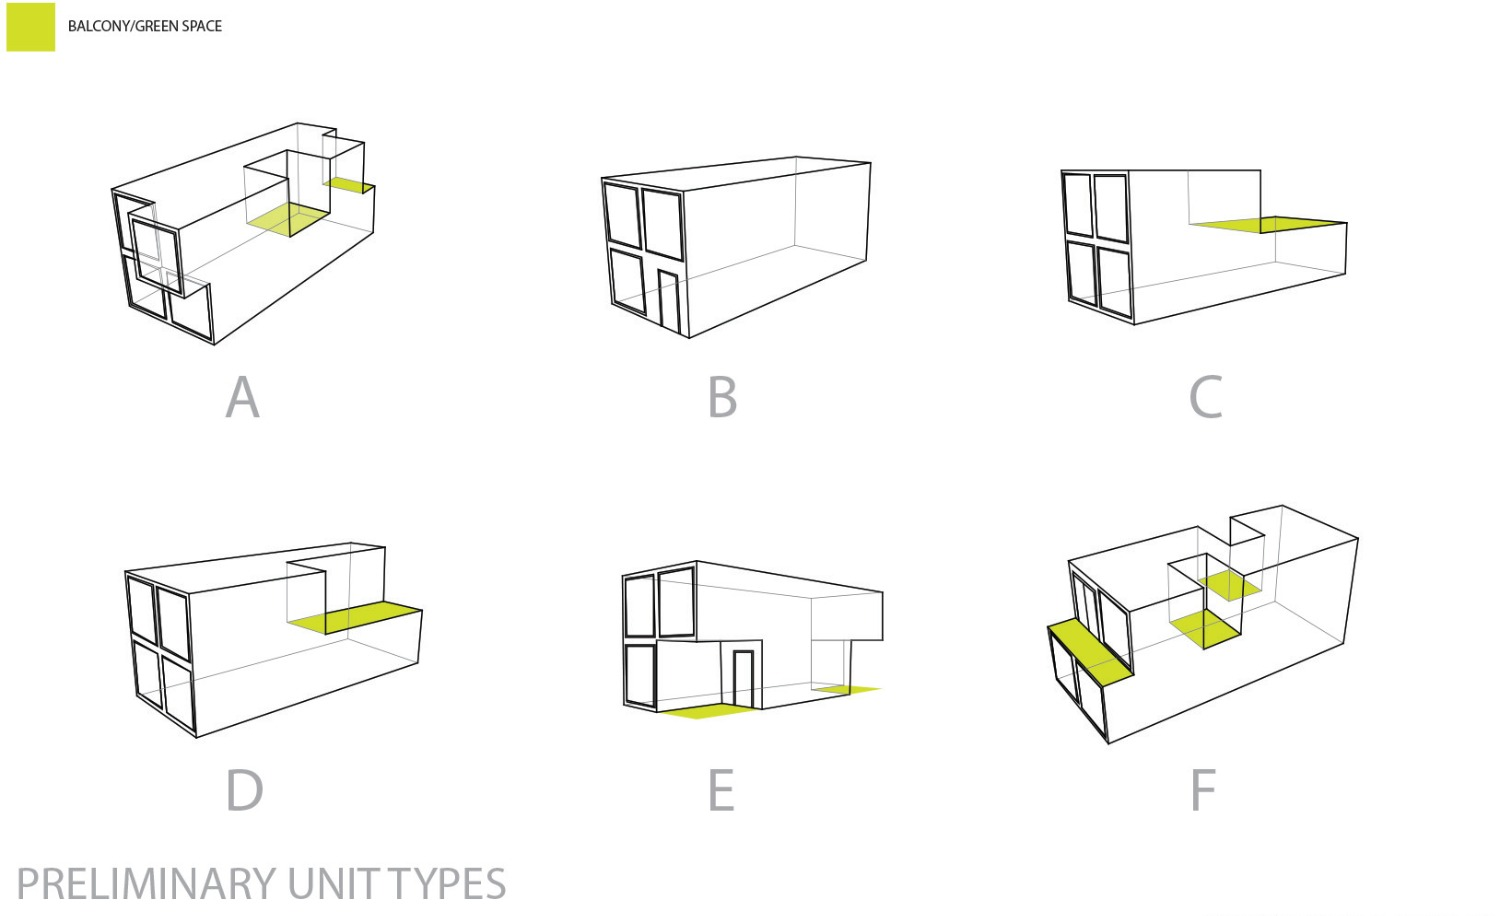 Preliminary Unit Types